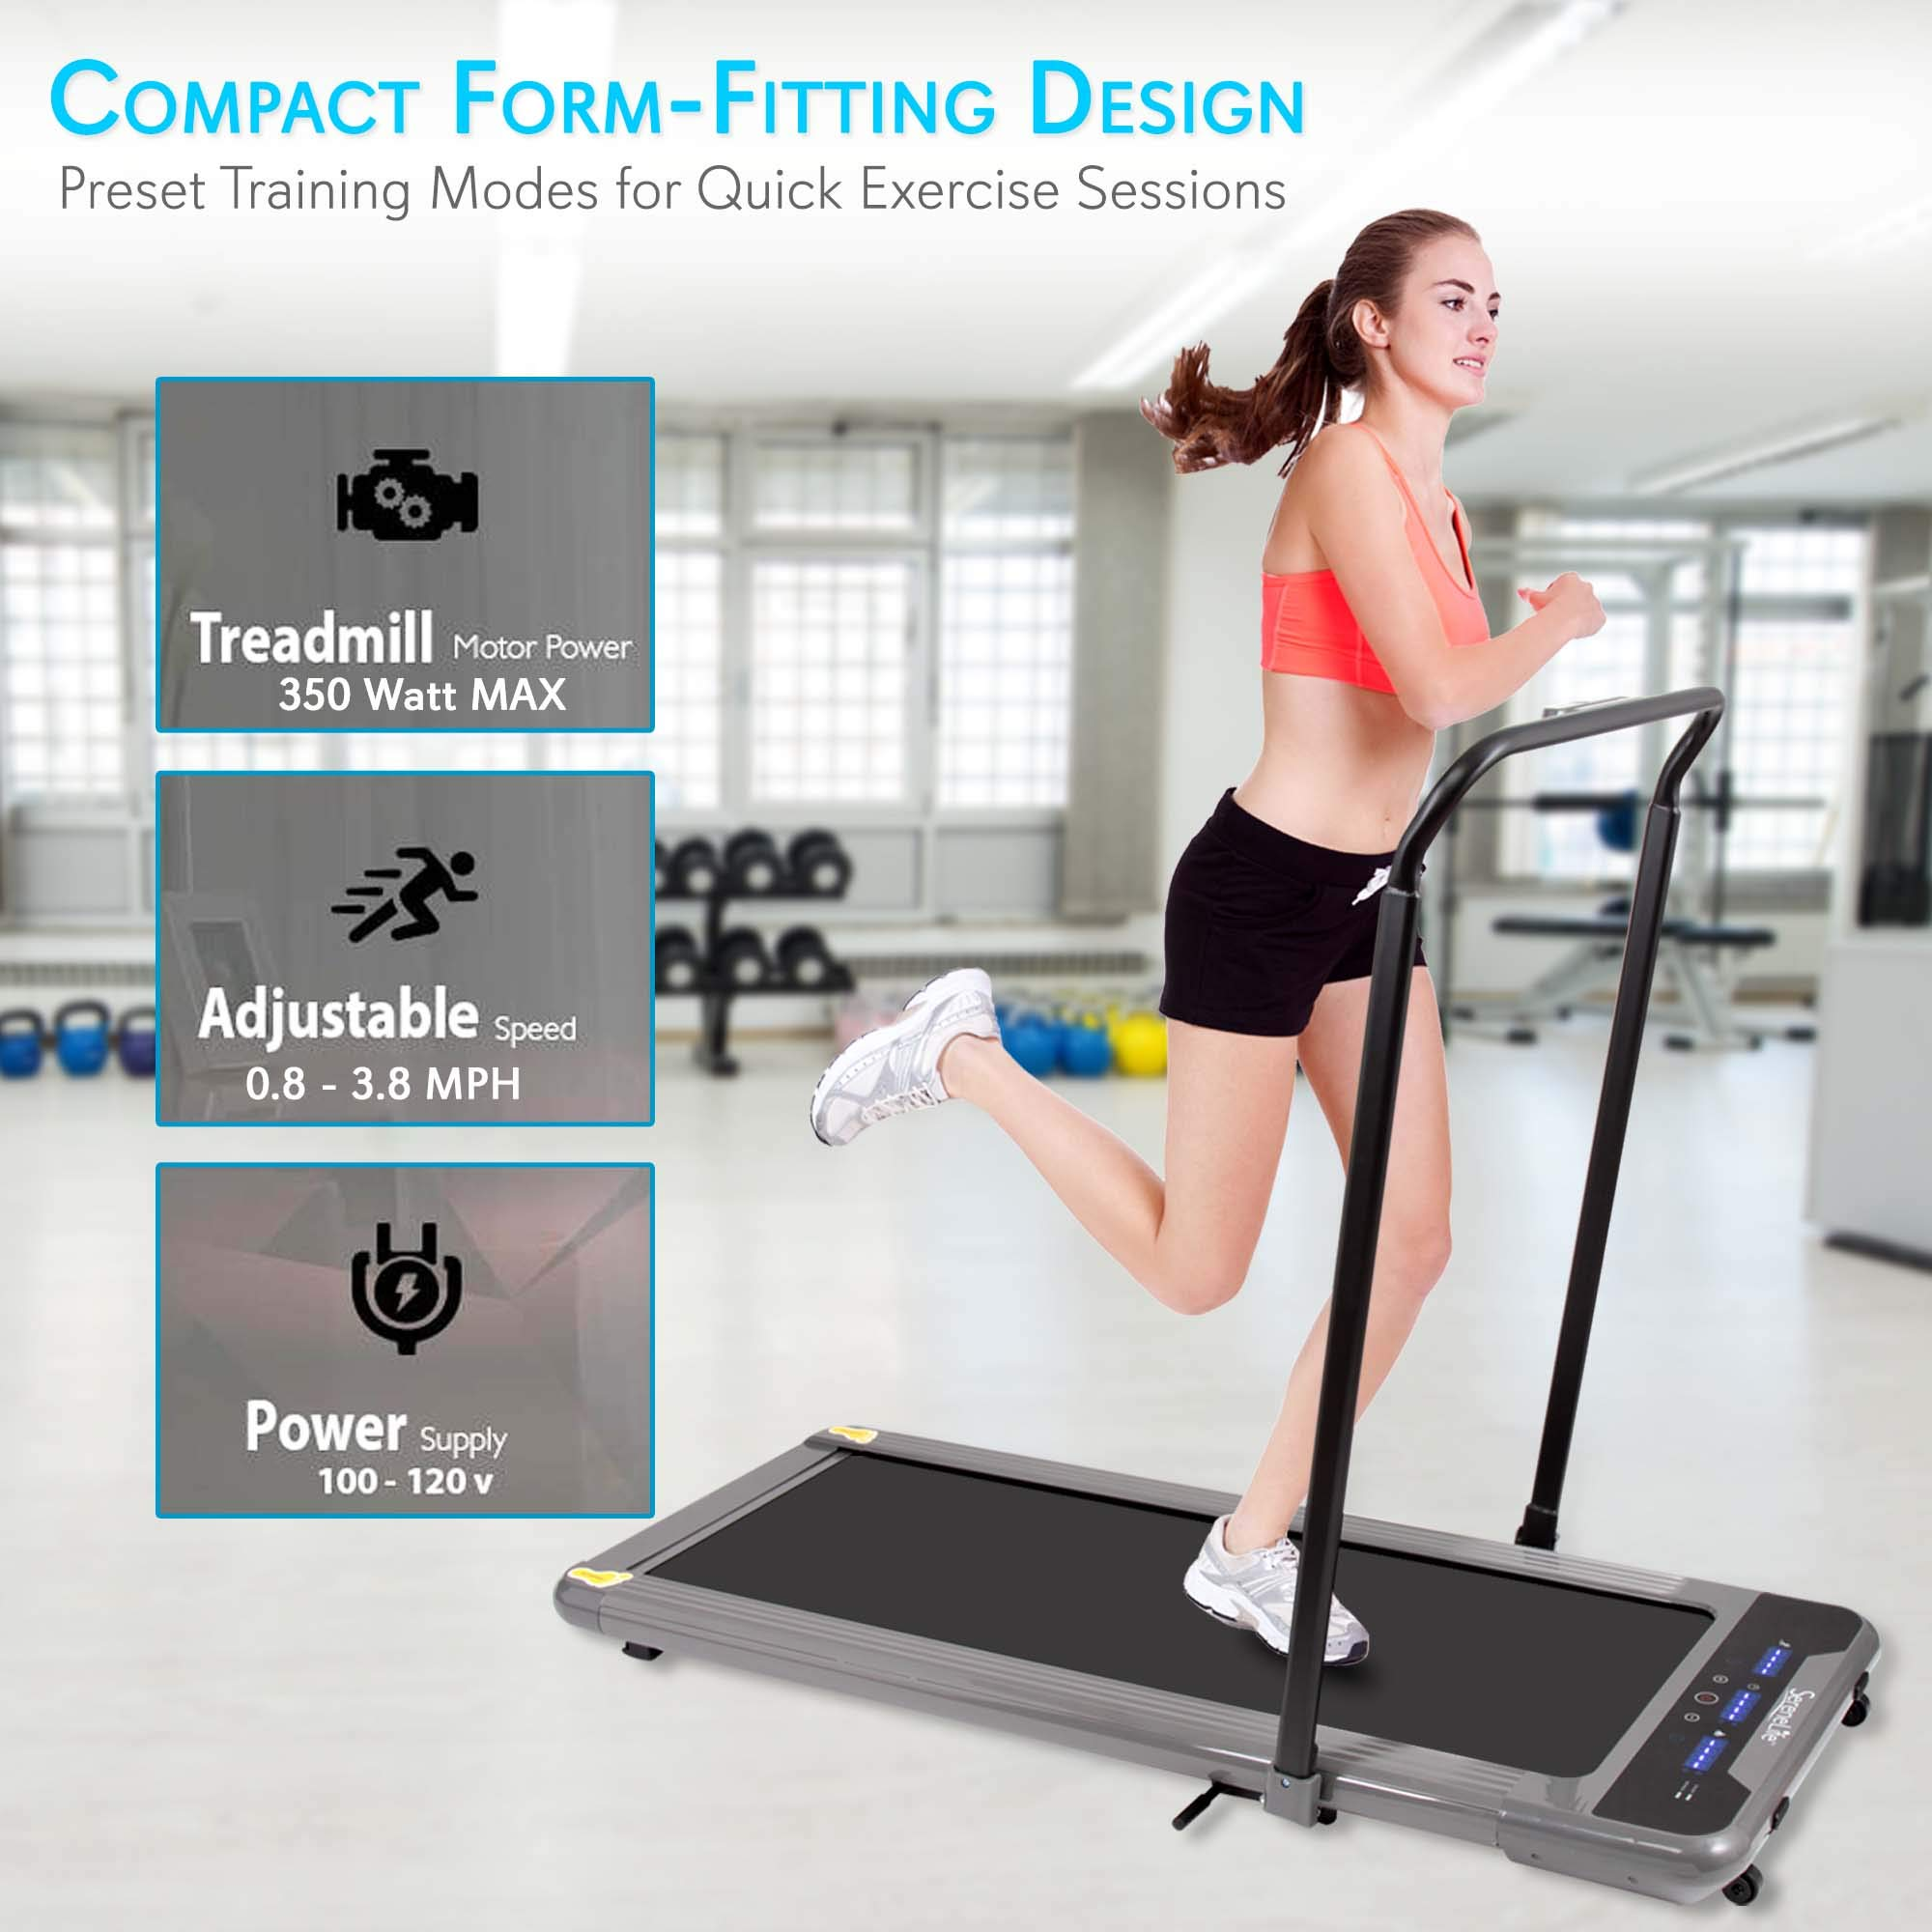 "SereneLife 350W Low Speed Fitness Treadmill - Smart Digital Slim Folding Electric Indoor Home Gym Foldable Fitness Exercise Running Machine - 40.0"" x 14.3"" Belt, Safety Key, Remote Control SLFTRD50 by SereneLife (Image #3)"